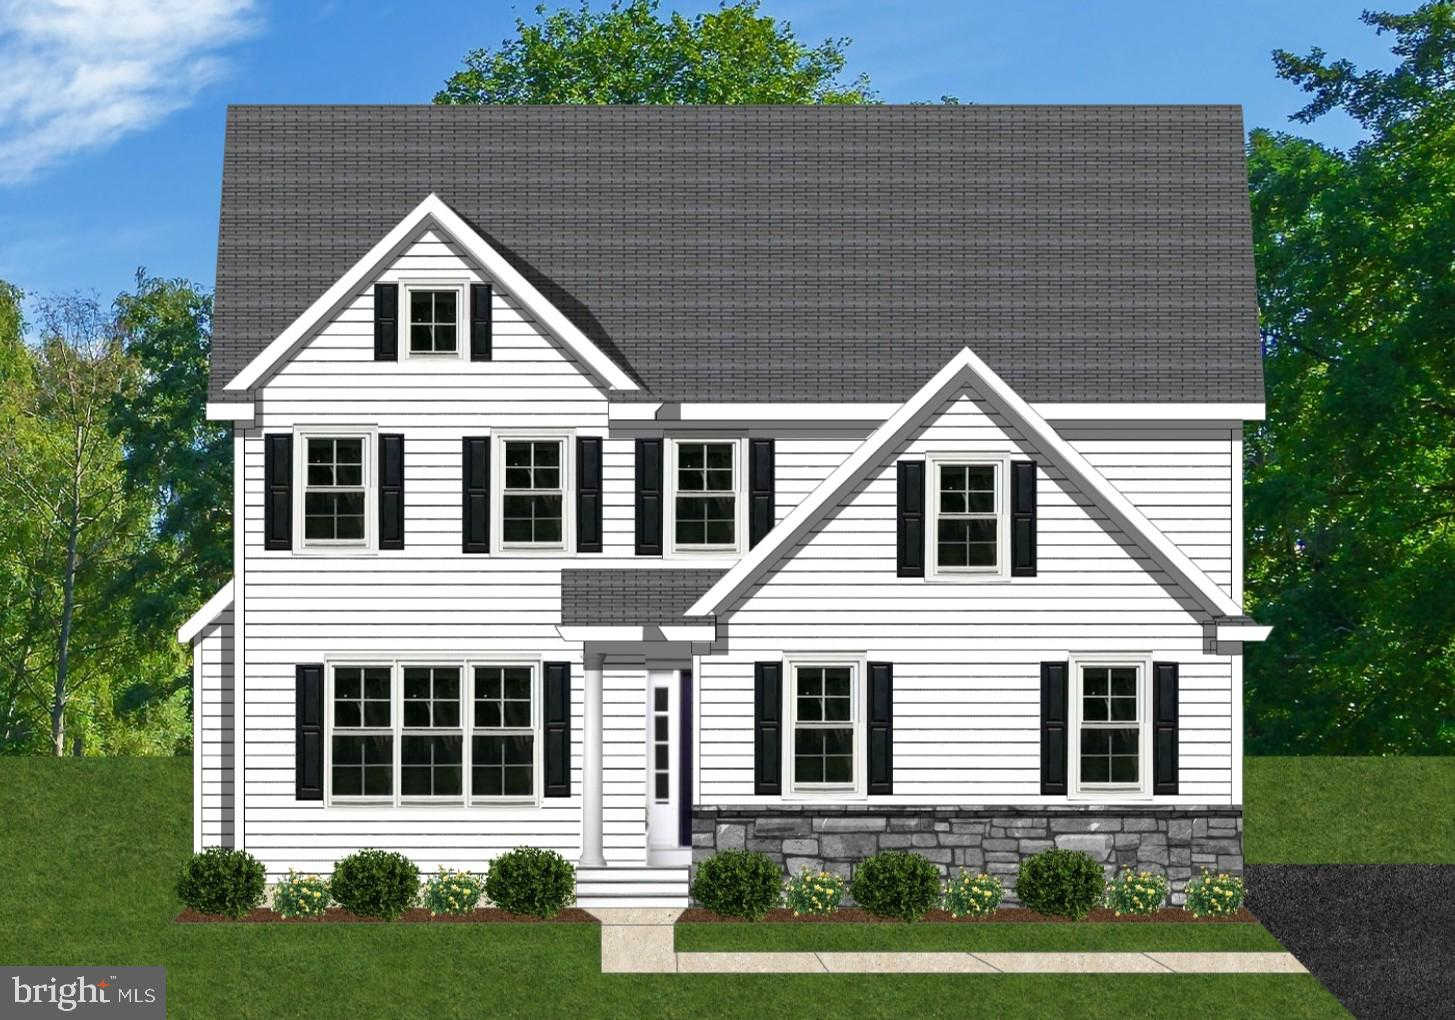 717 Redman, Haddonfield, NJ 08033 is now new to the market!